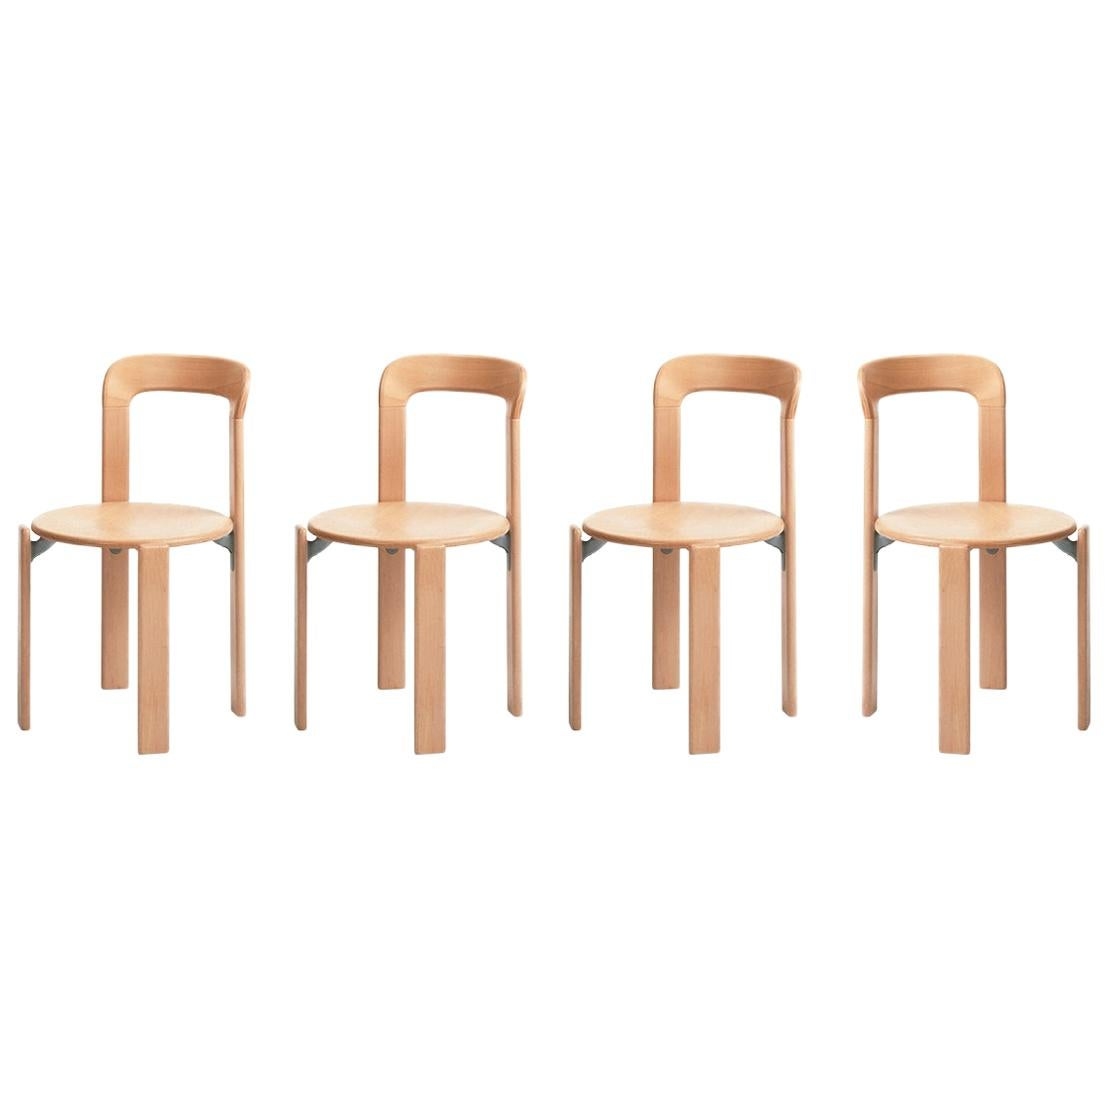 Set of 4 Natural Rey Chairs by Dietiker, a Swiss Icon Since 1971